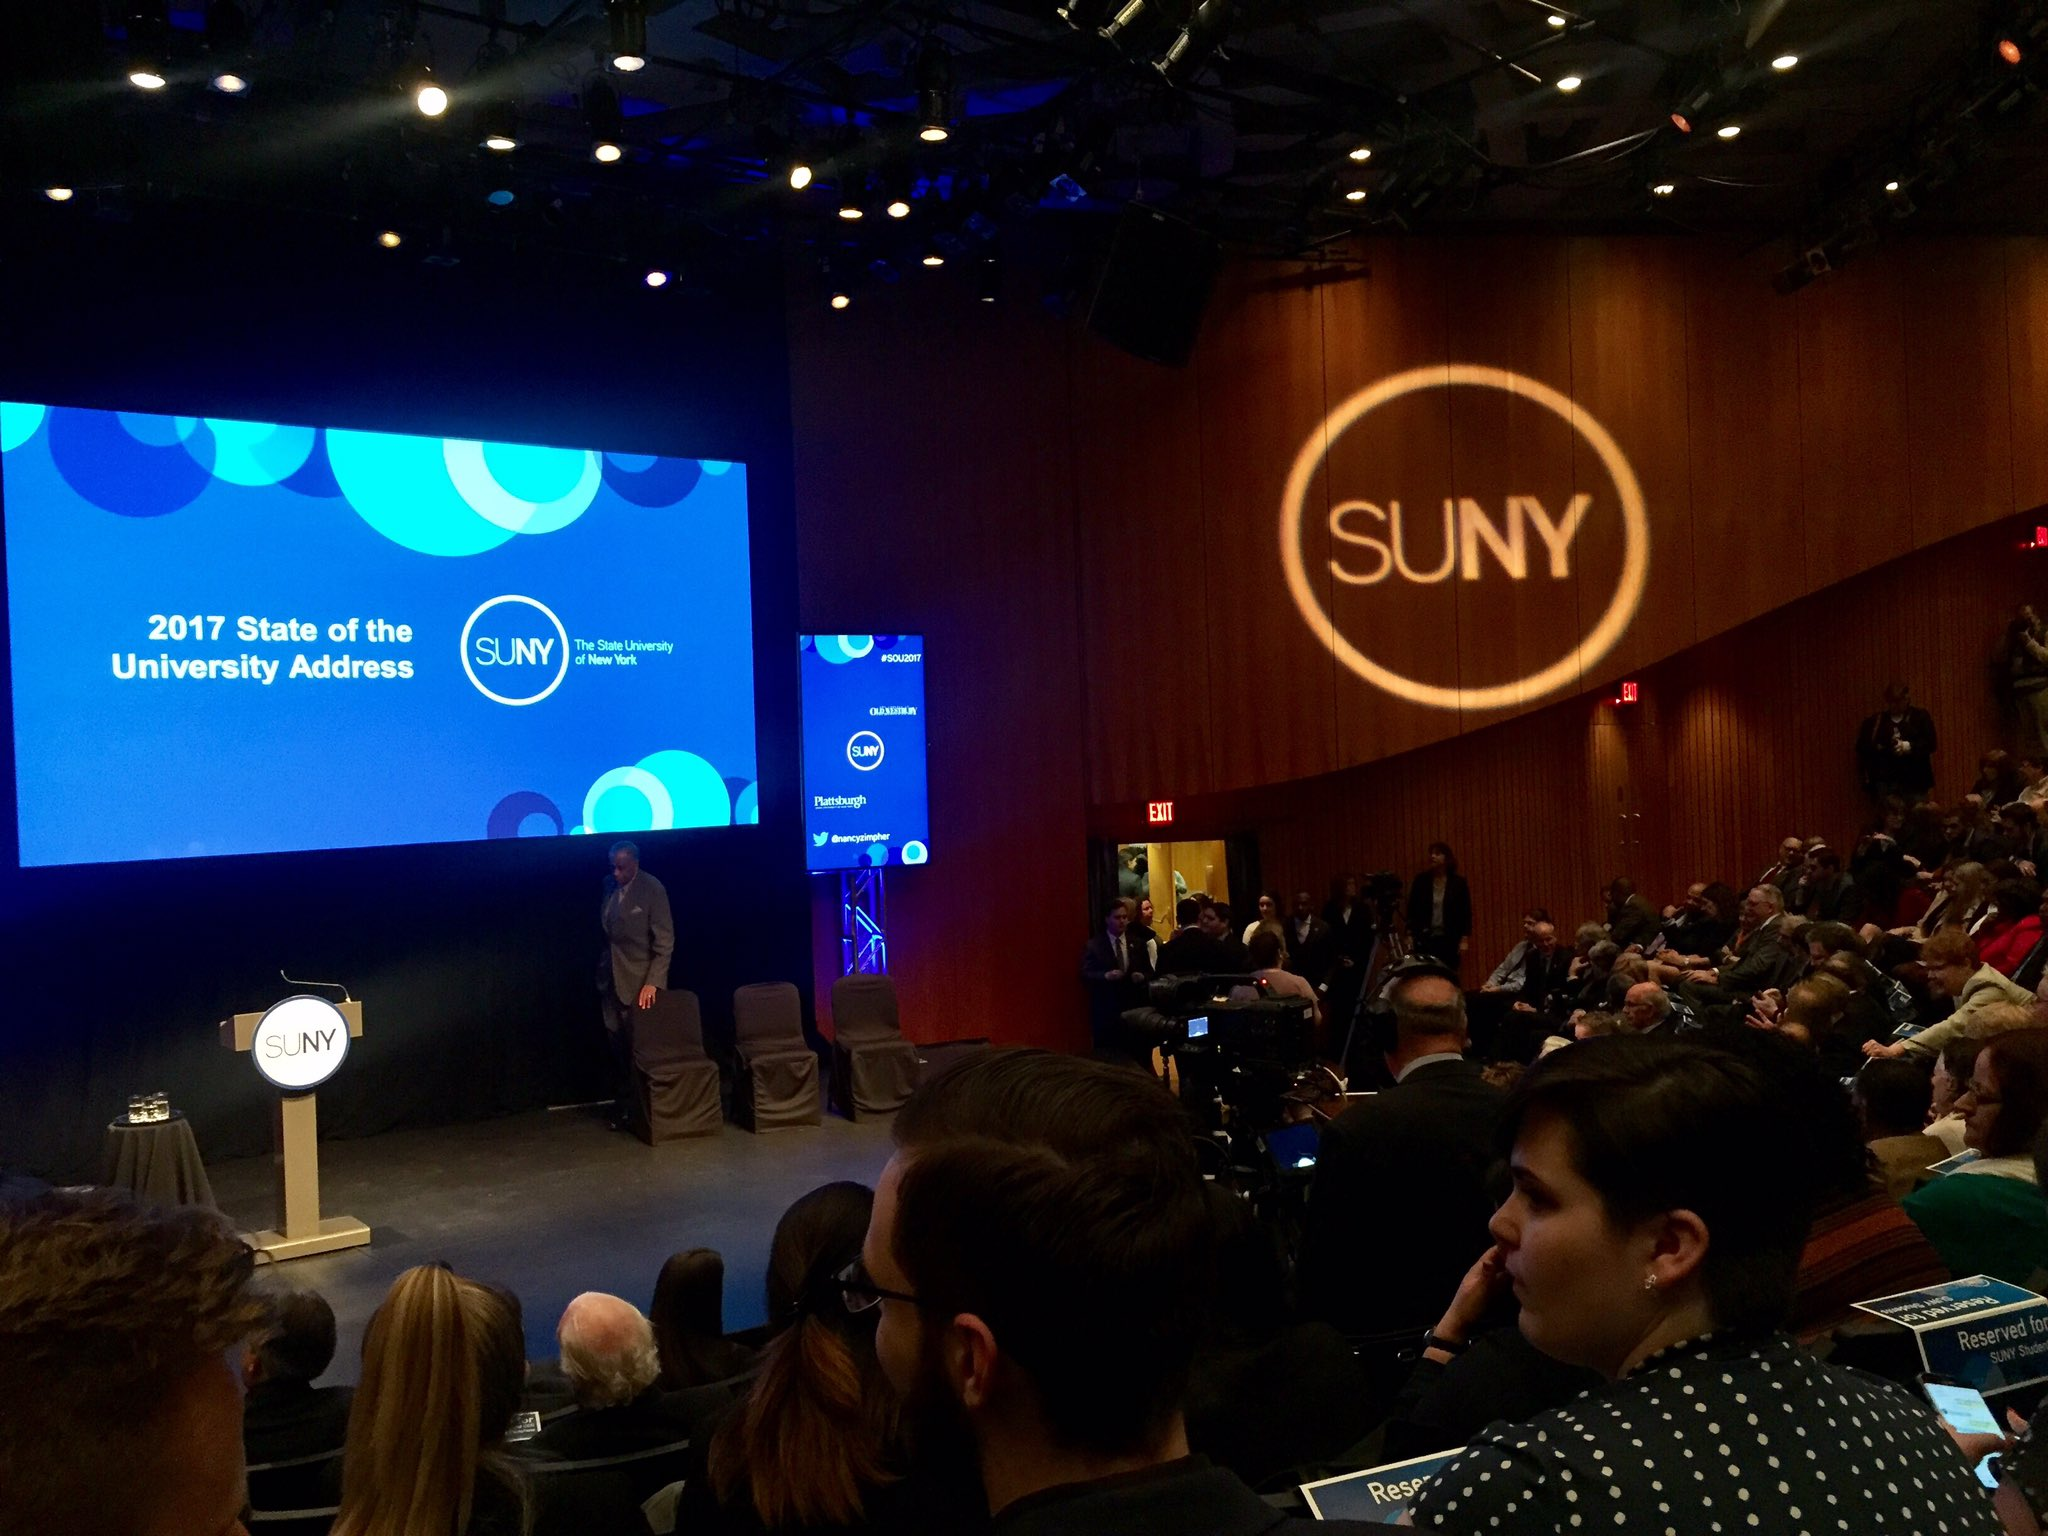 I will be live tweeting from The Egg, where @SUNY Chancellor Nancy Zimpher will deliver her final State of the University address #SOU2017 https://t.co/Y4D0COsQoC